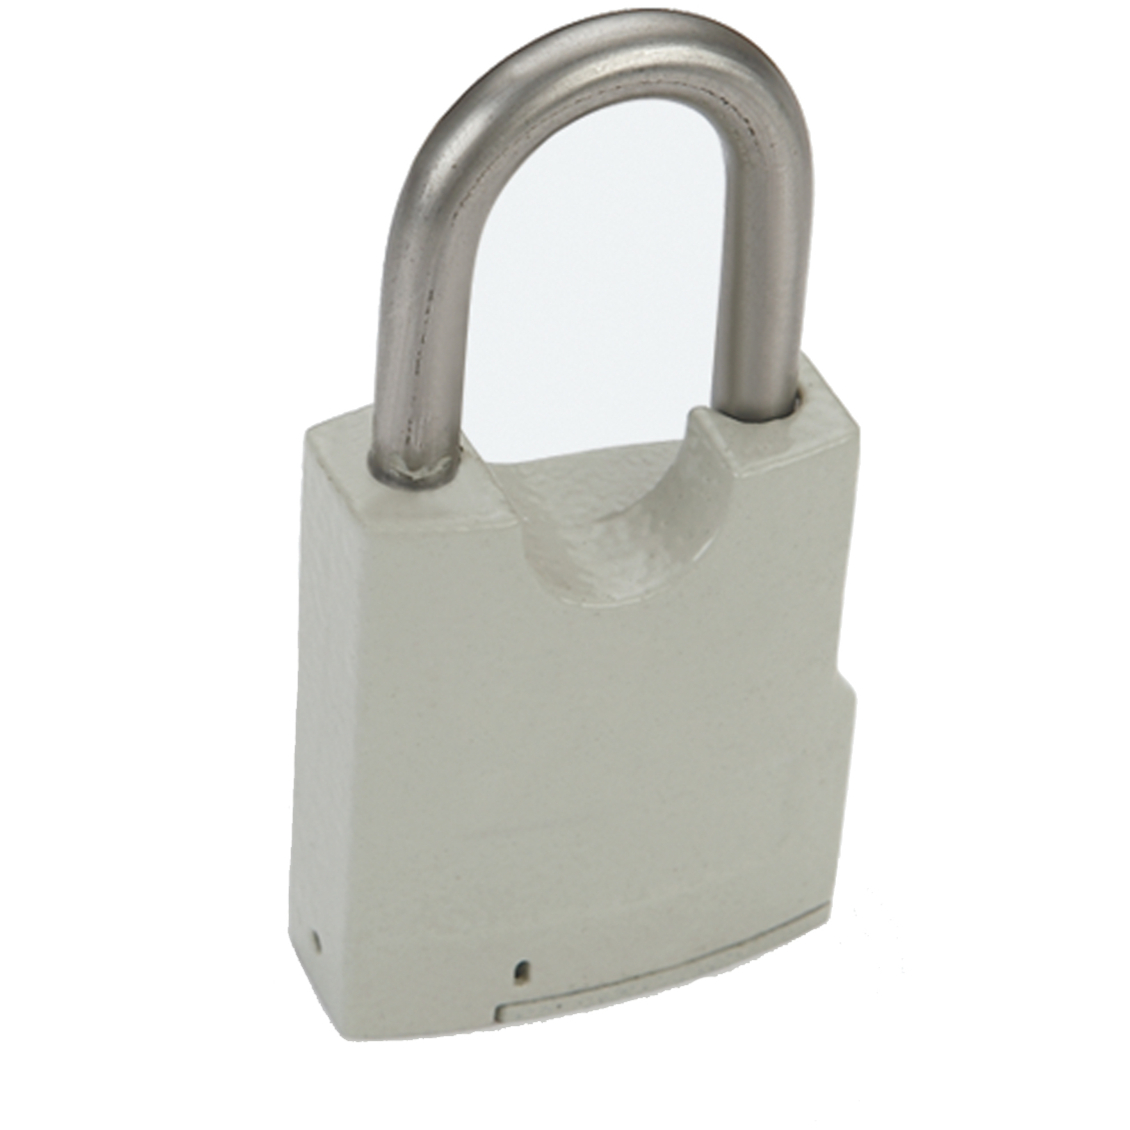 Cabinet Intelligent Electronic Padlock Zhejiang Zhongzheng Lock Co.,Ltd